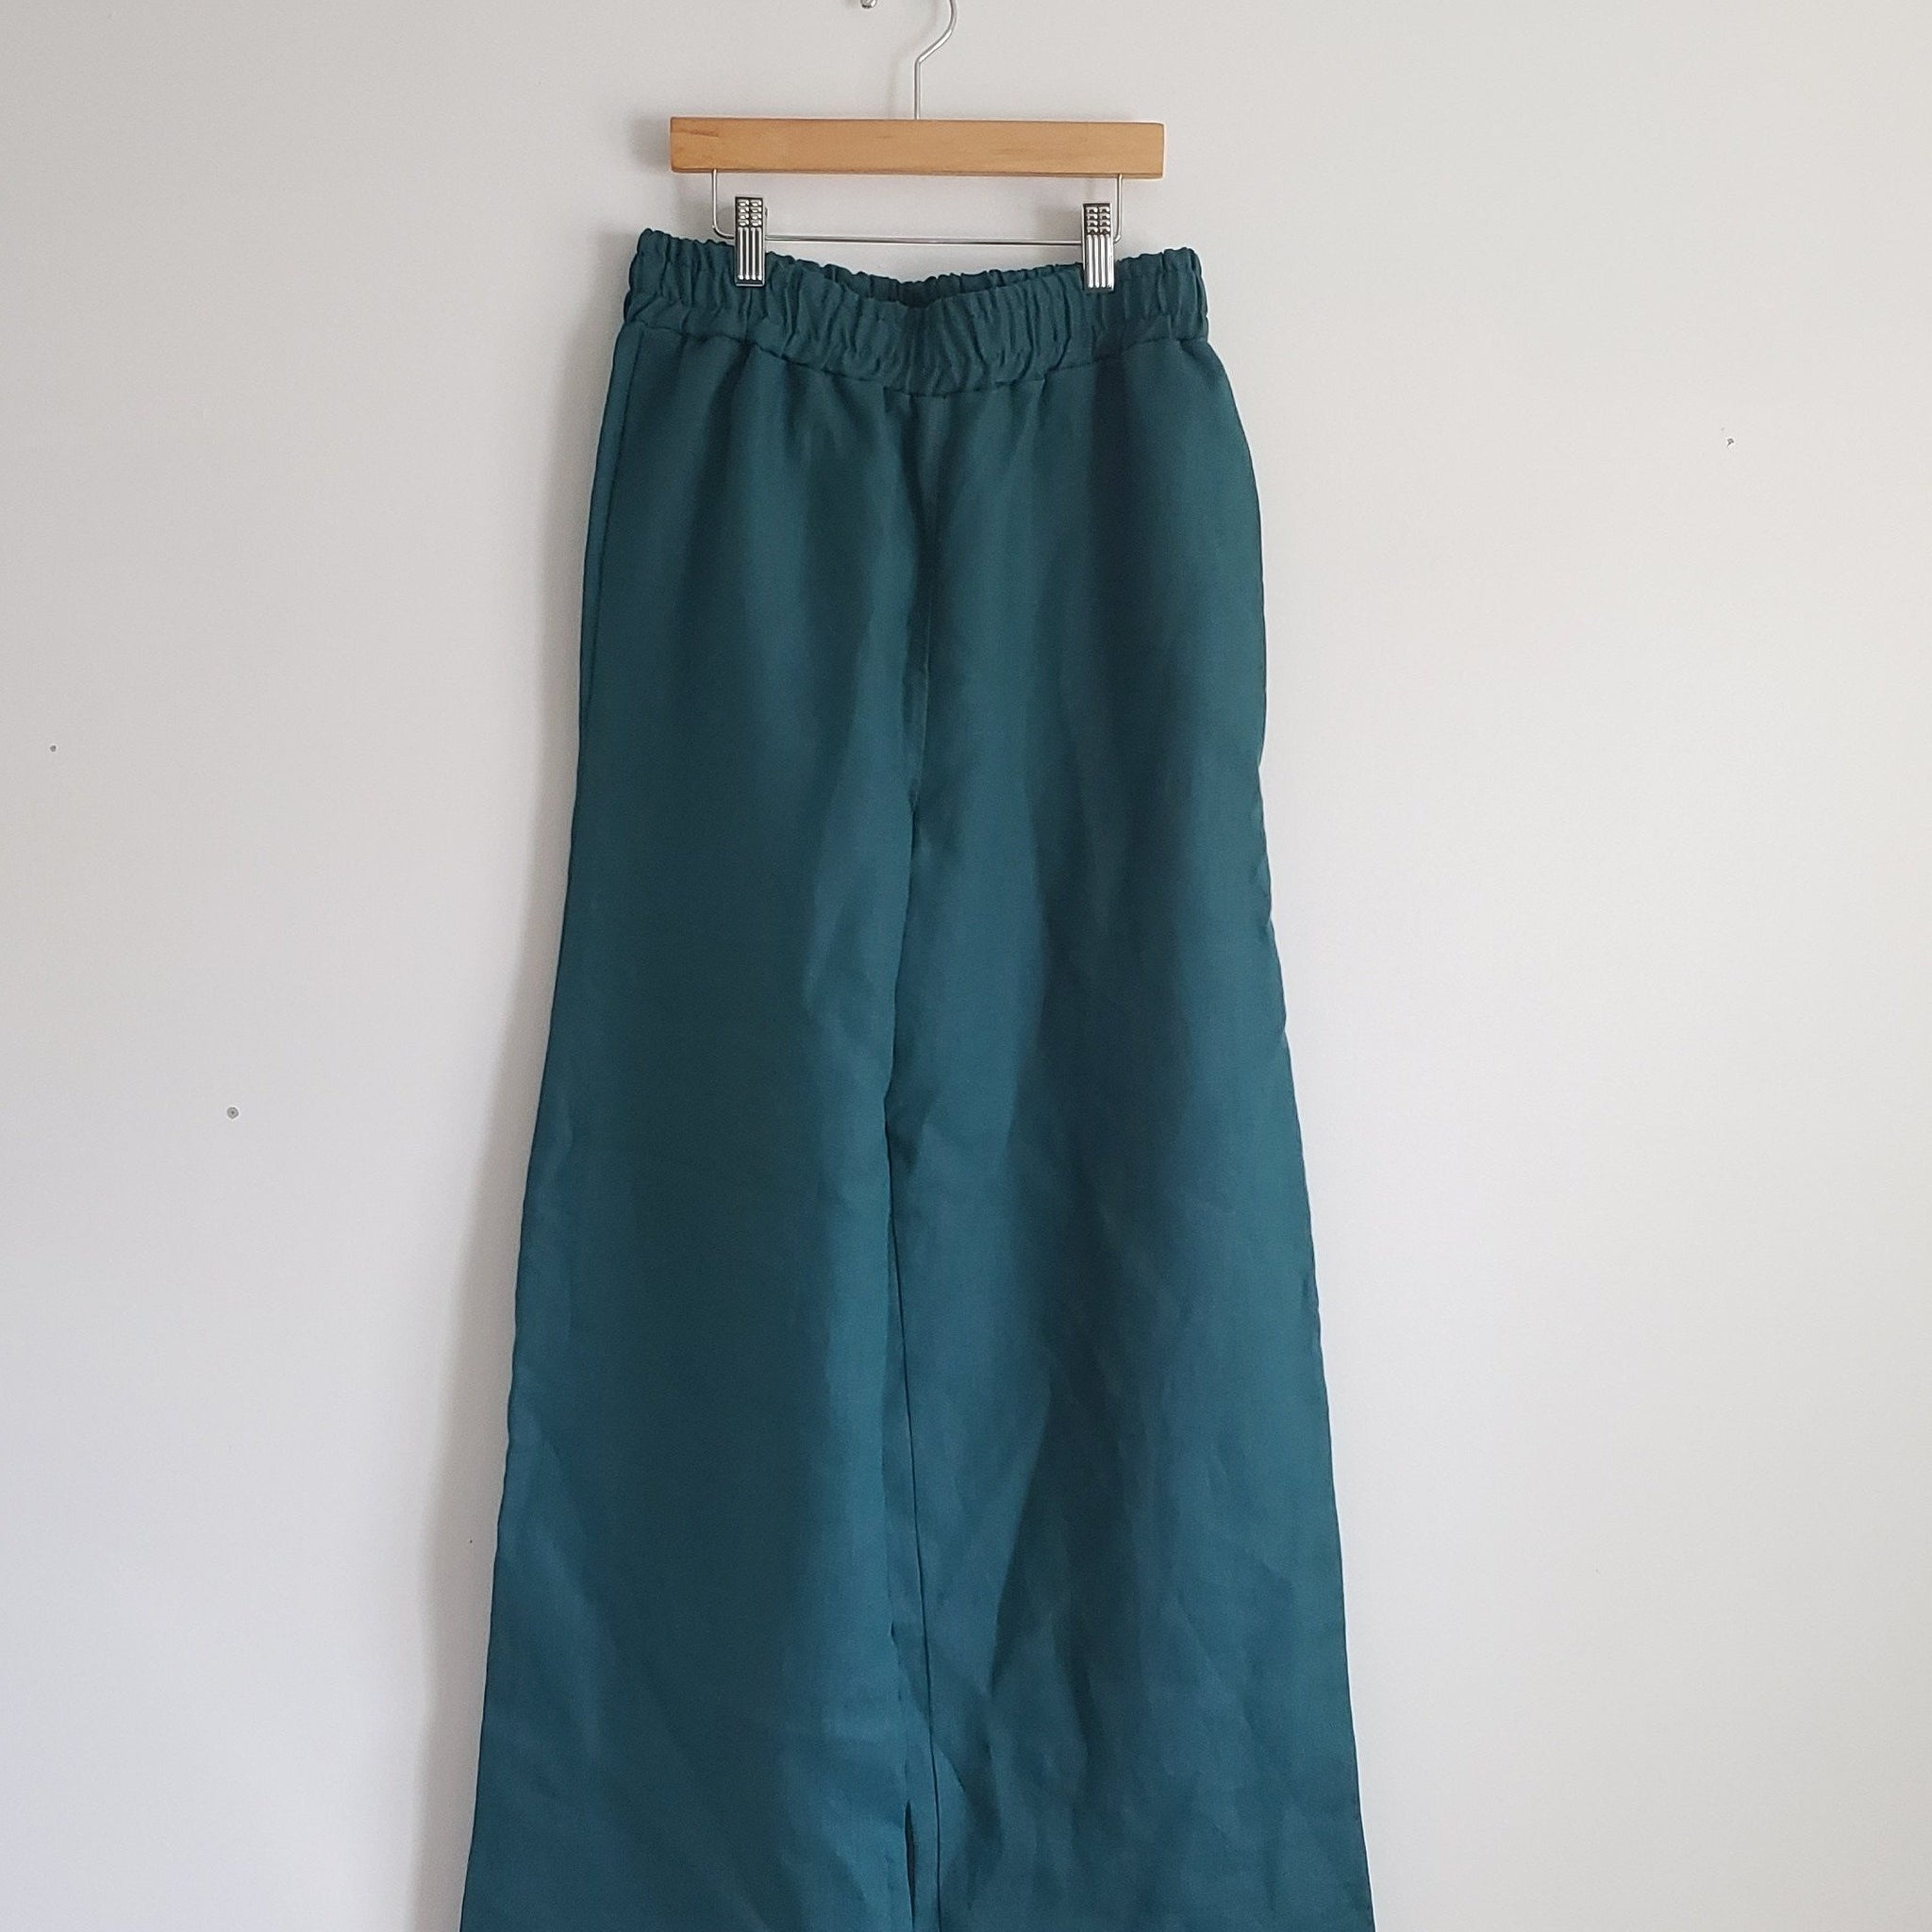 teal green blue linen pants hanging in a clothing hanger against a white wall backdrop